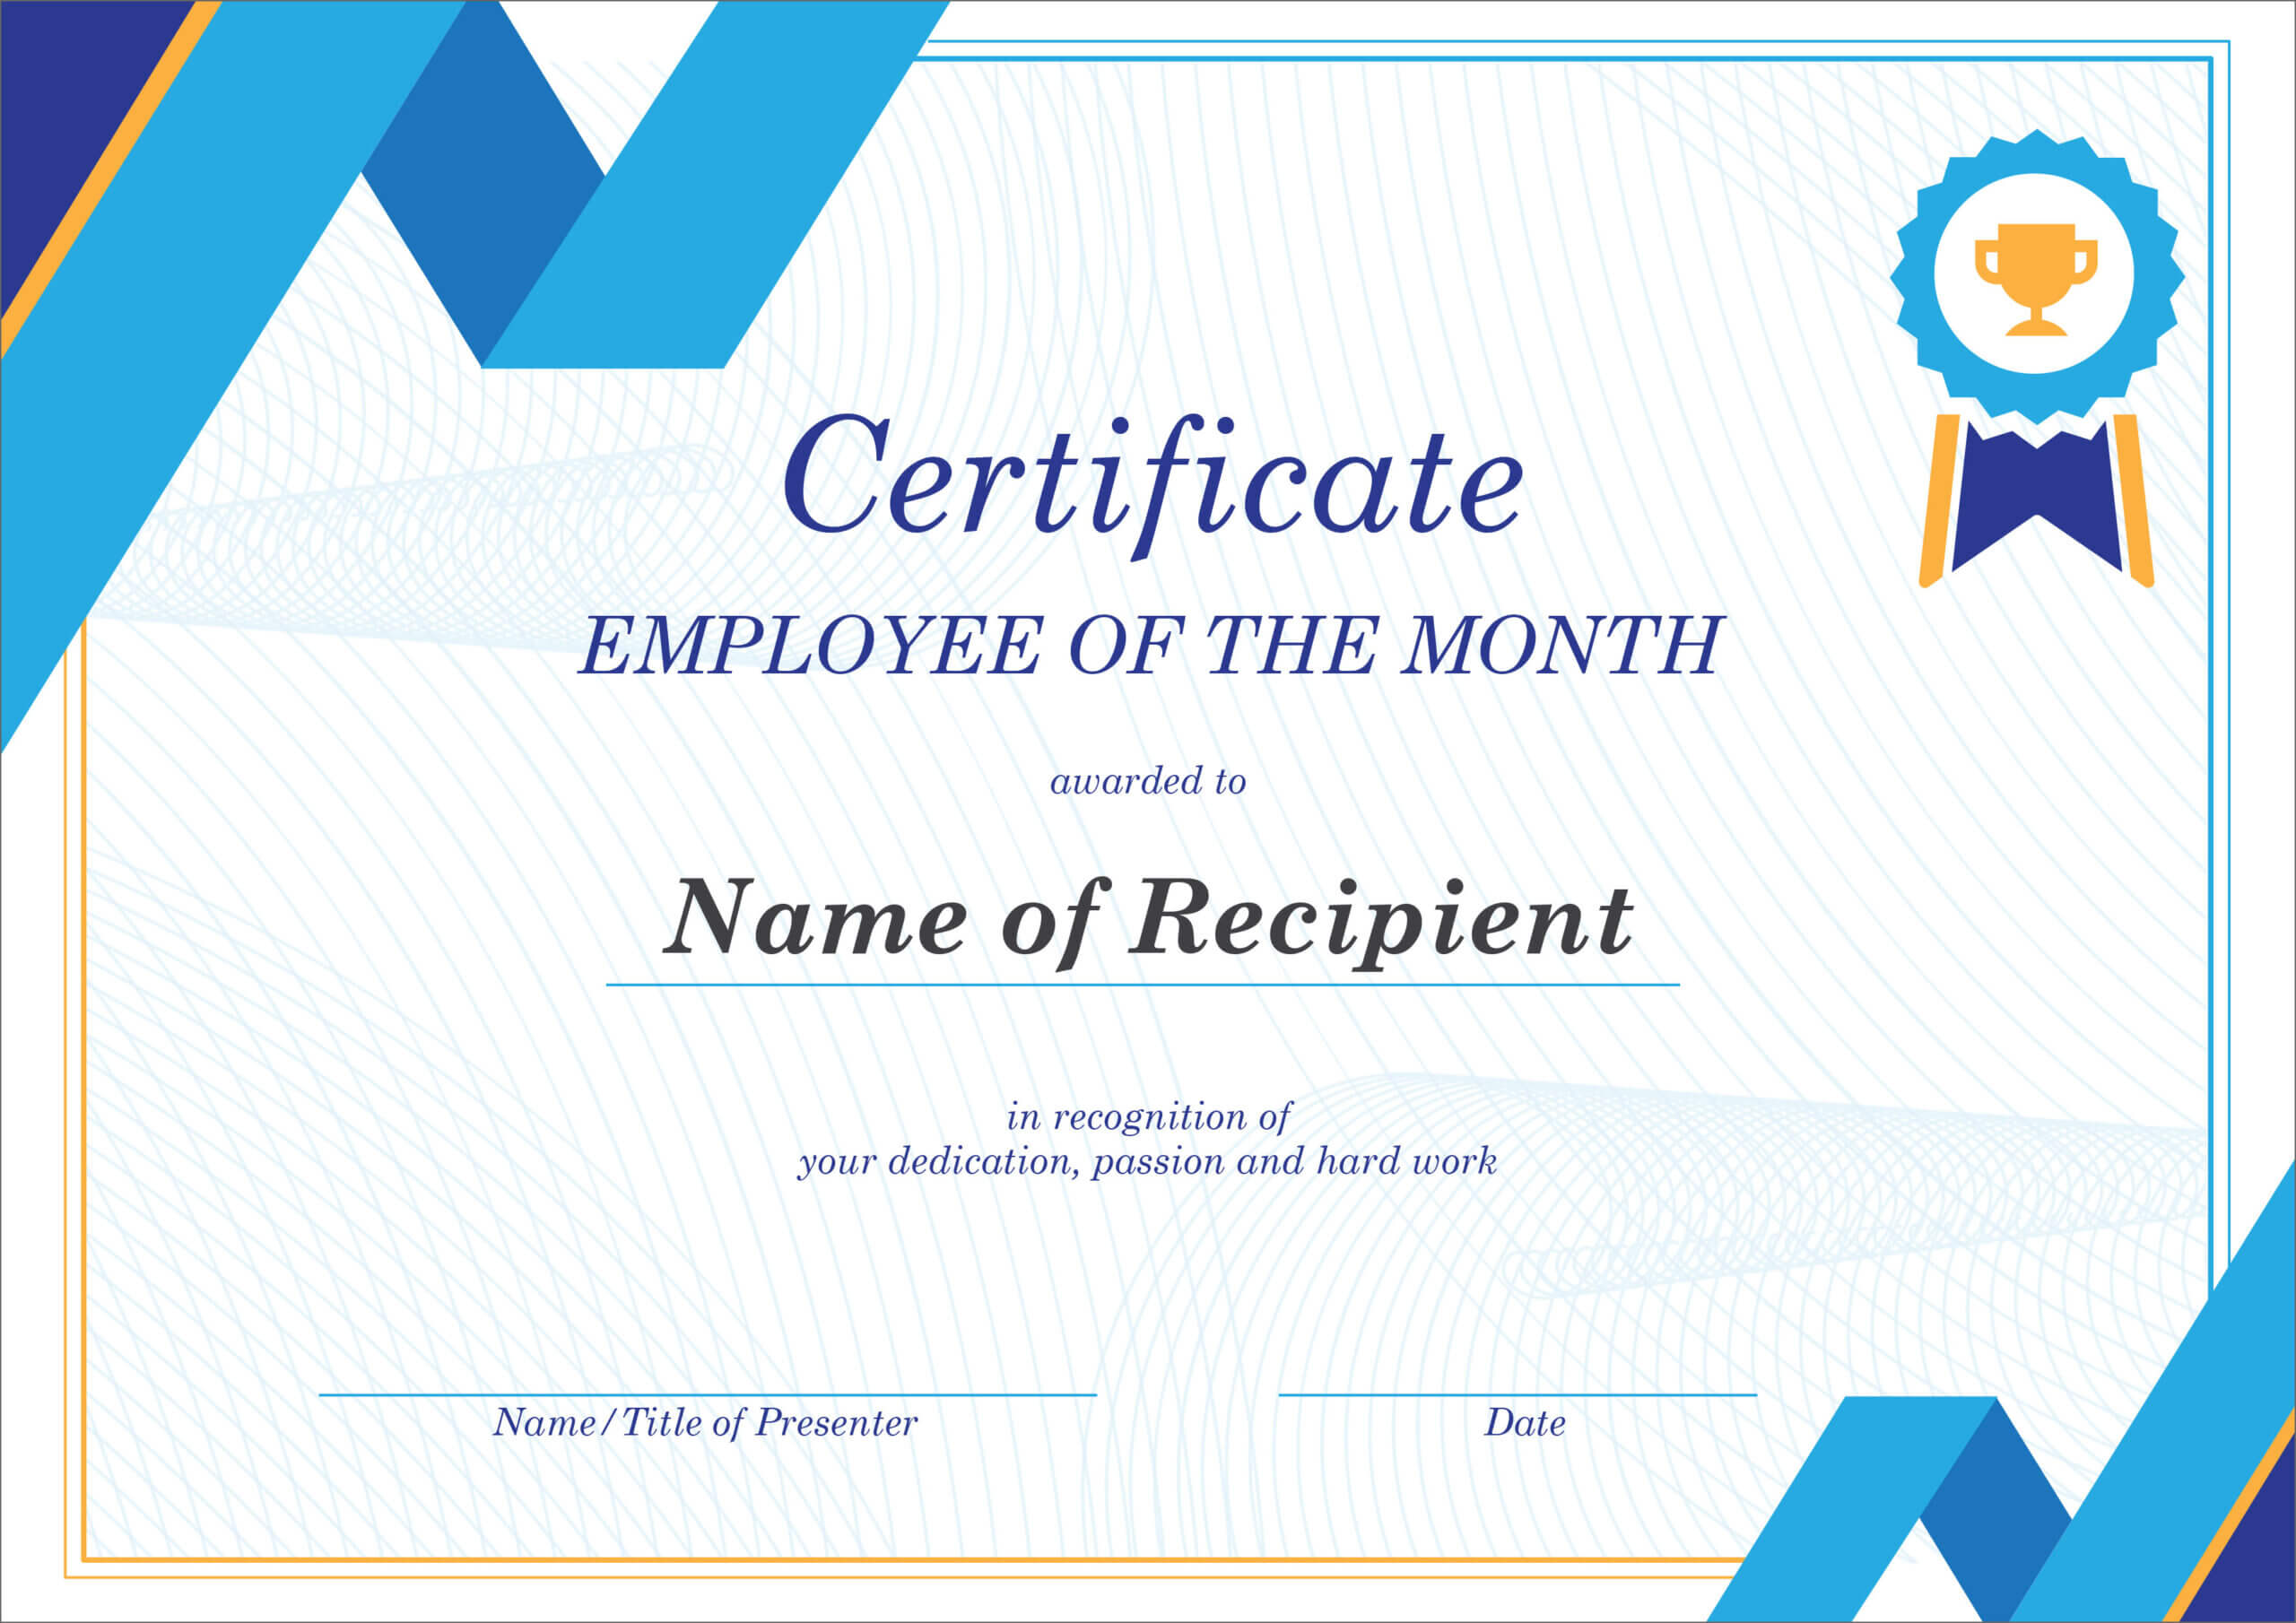 50 Free Creative Blank Certificate Templates In Psd Regarding Manager Of The Month Certificate Template